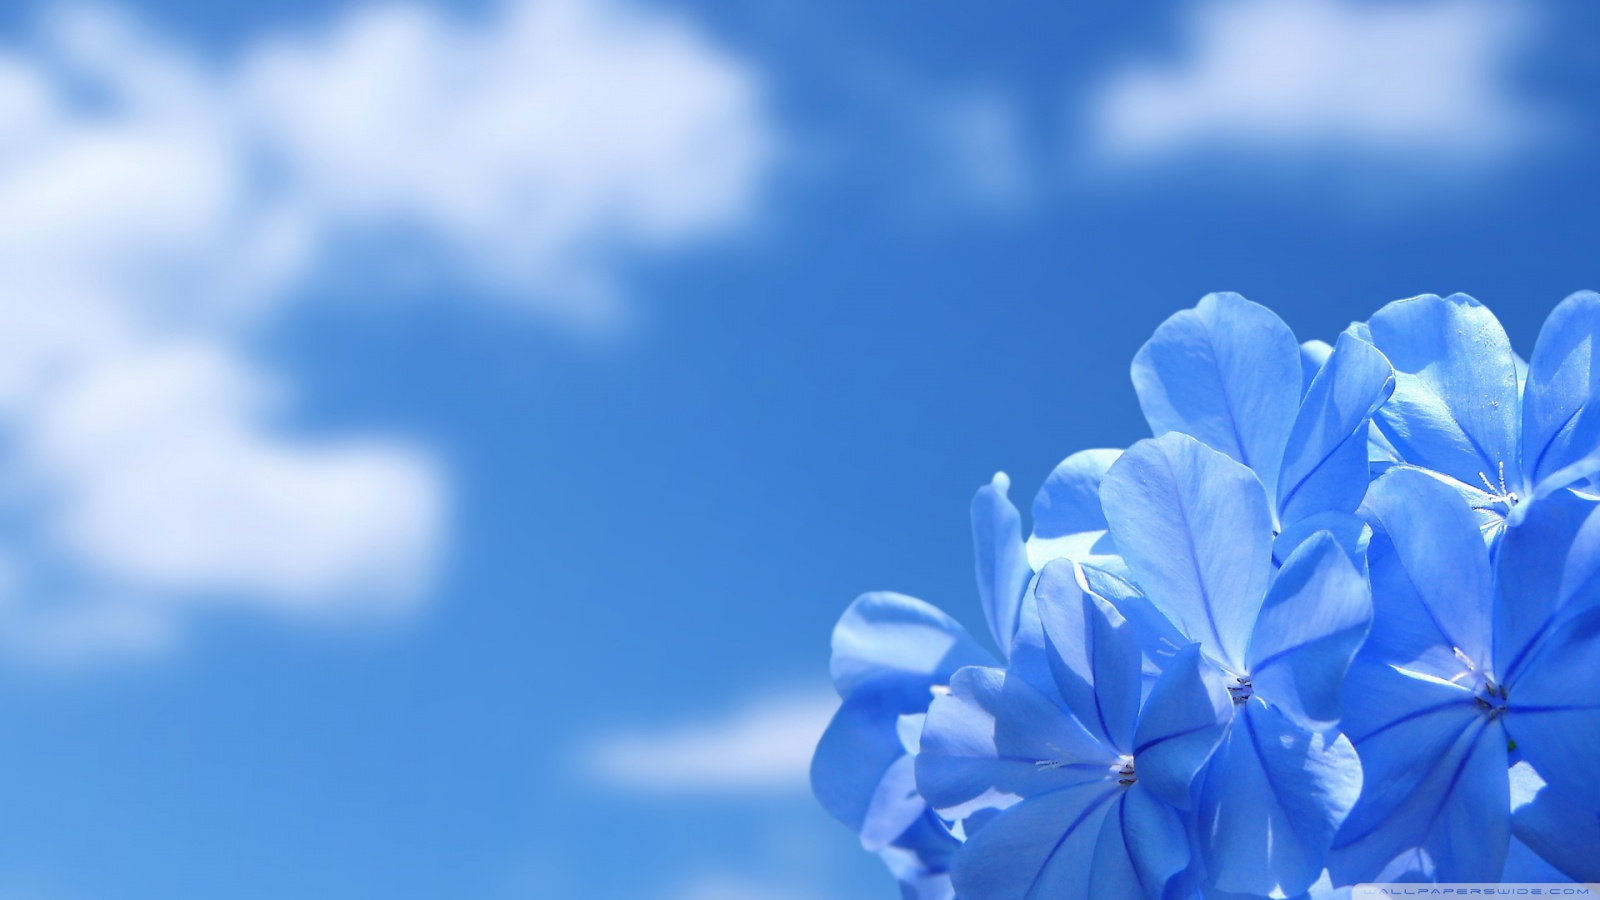 Blue Flowers Wallpaper HD